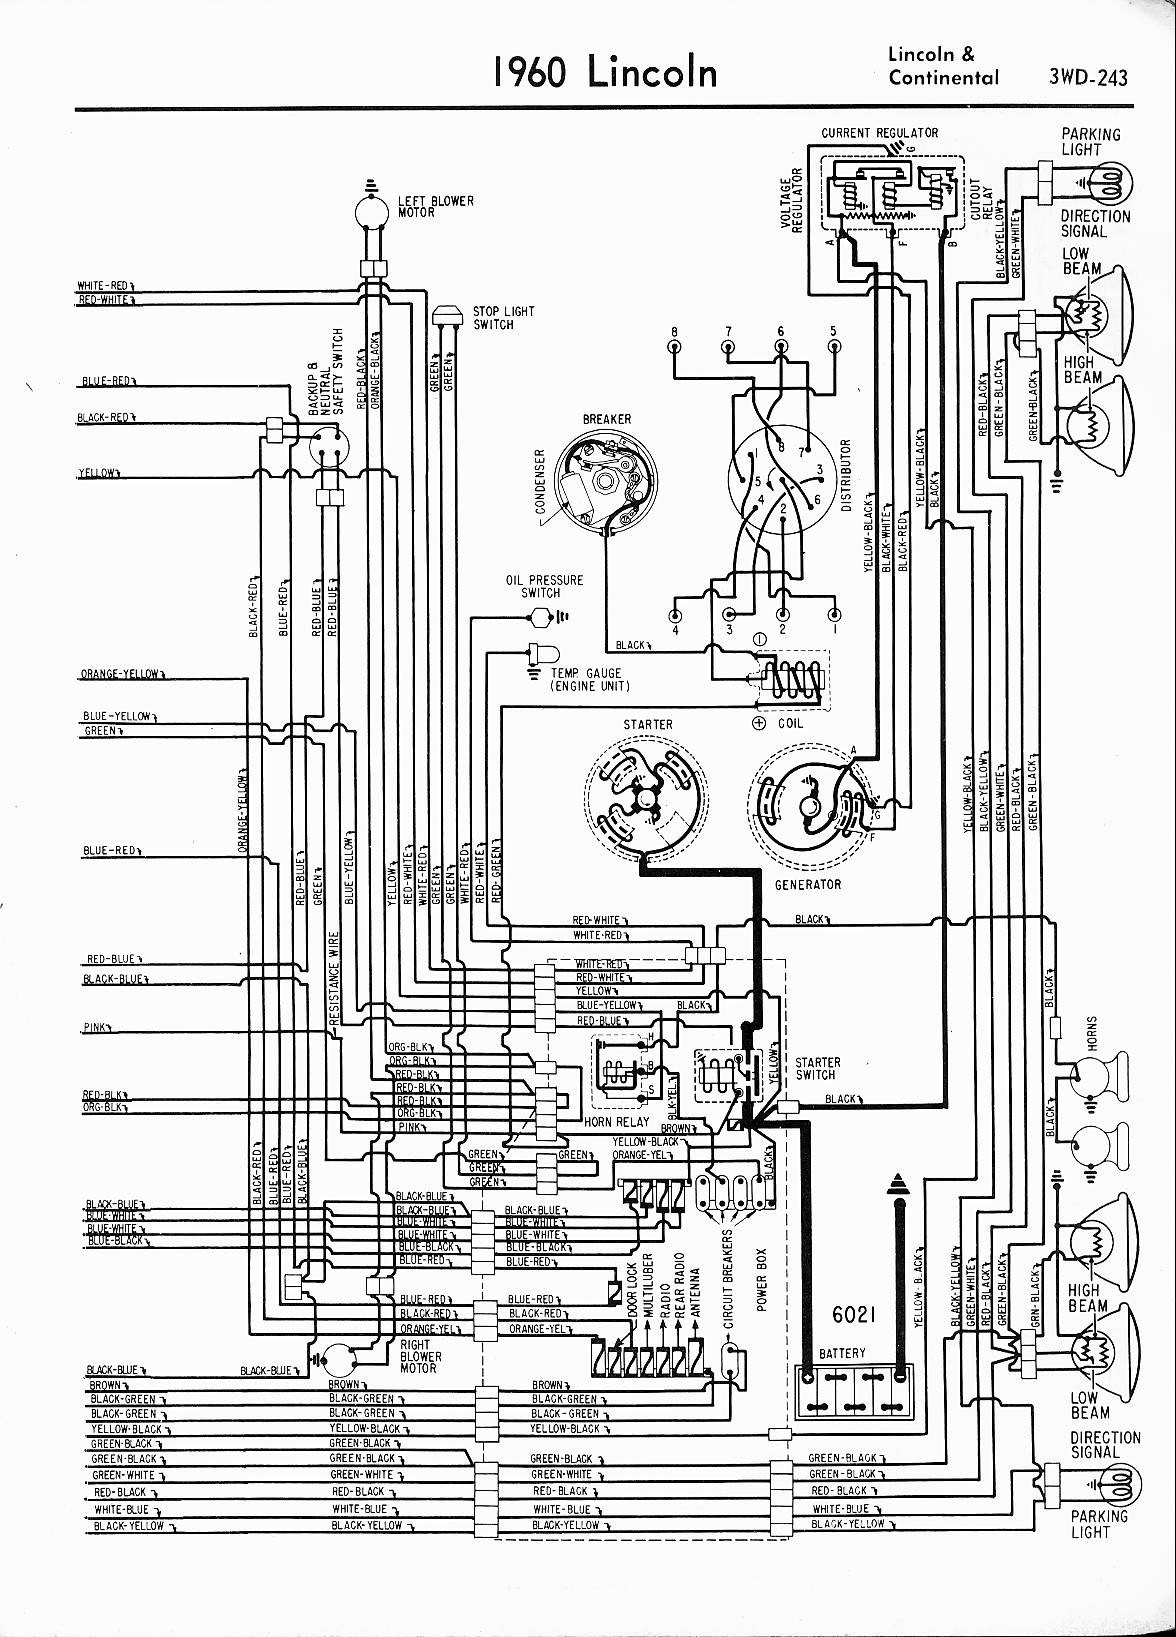 2003 Lincoln Navigator Engine Diagram 1966 Lincoln Wiring Diagram Content Resource Wiring Diagram •